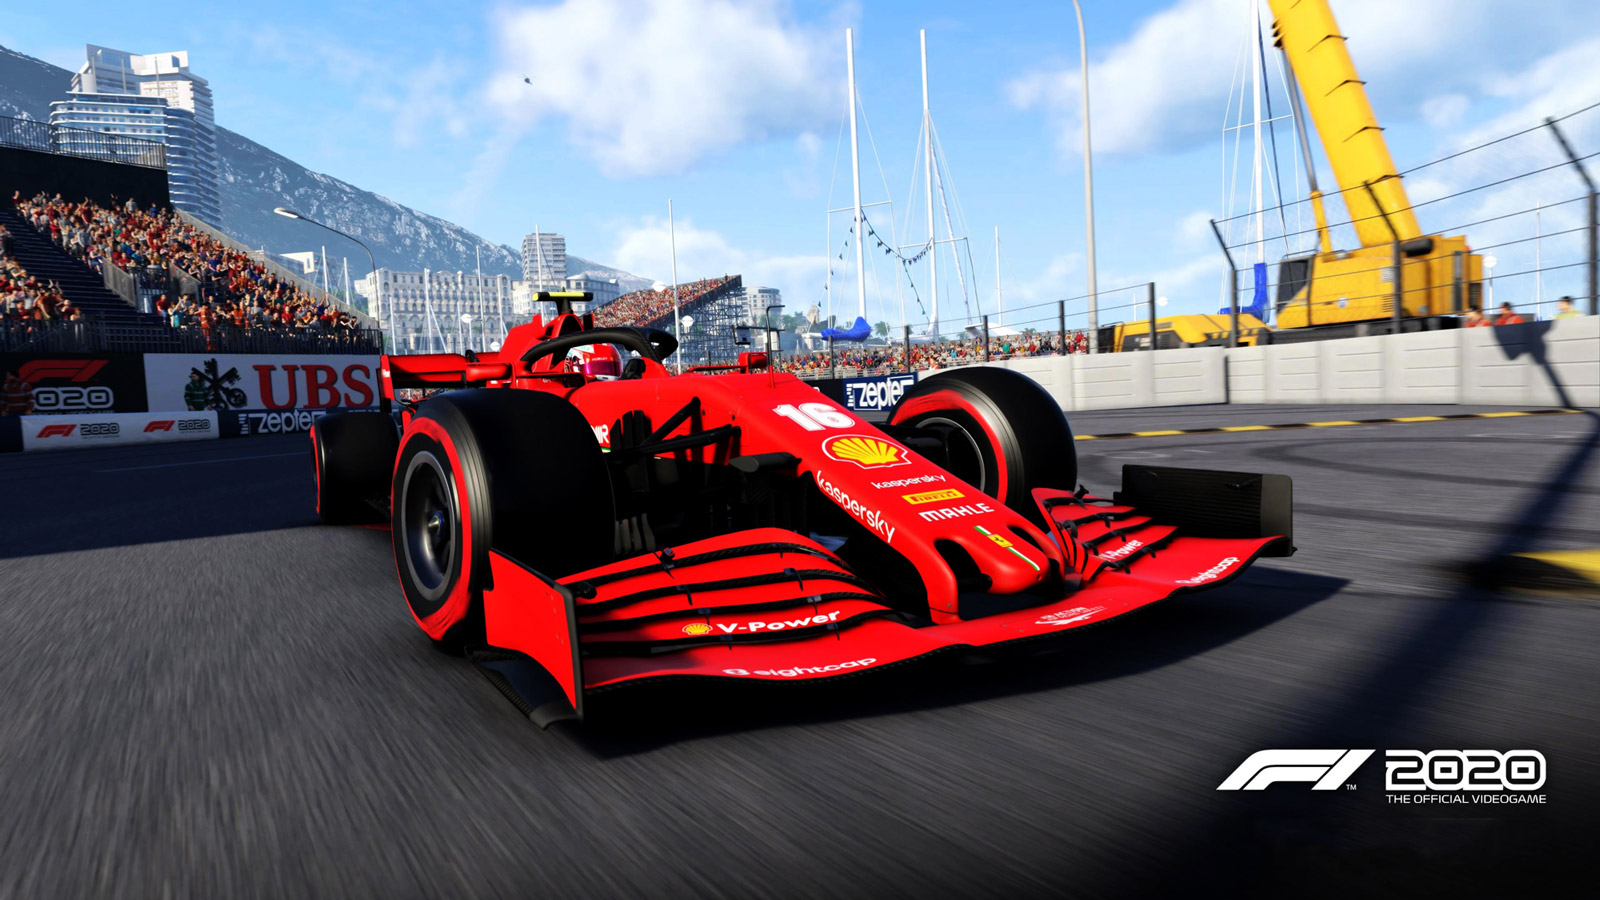 F1 2020 Wallpaper in 1600x900